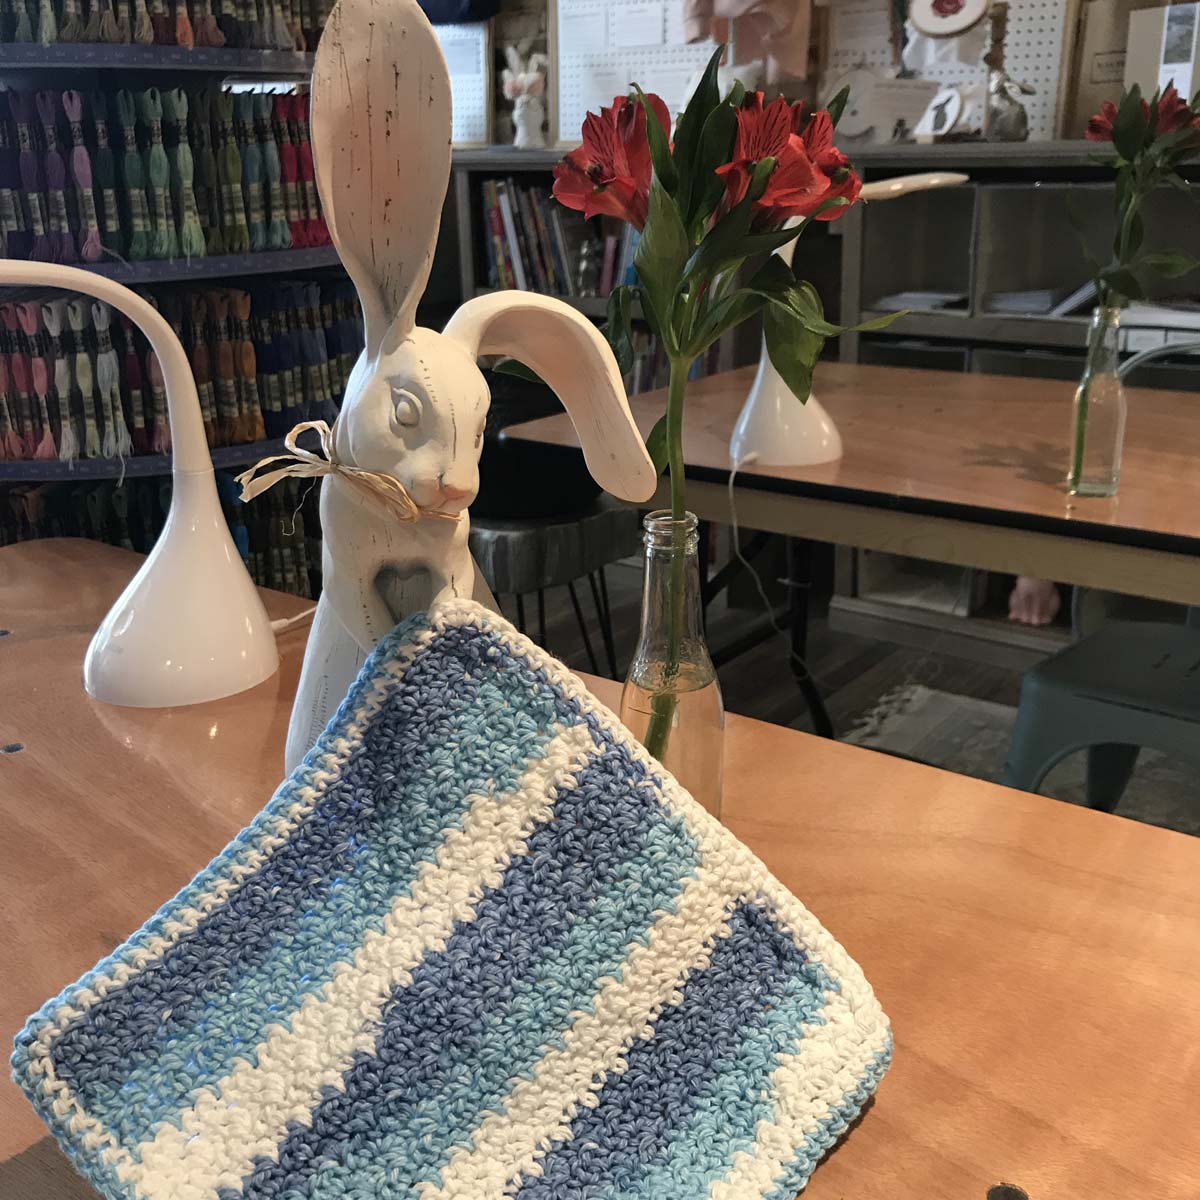 Blue and white striped crochet dishcloth on table with bunny sculpture.